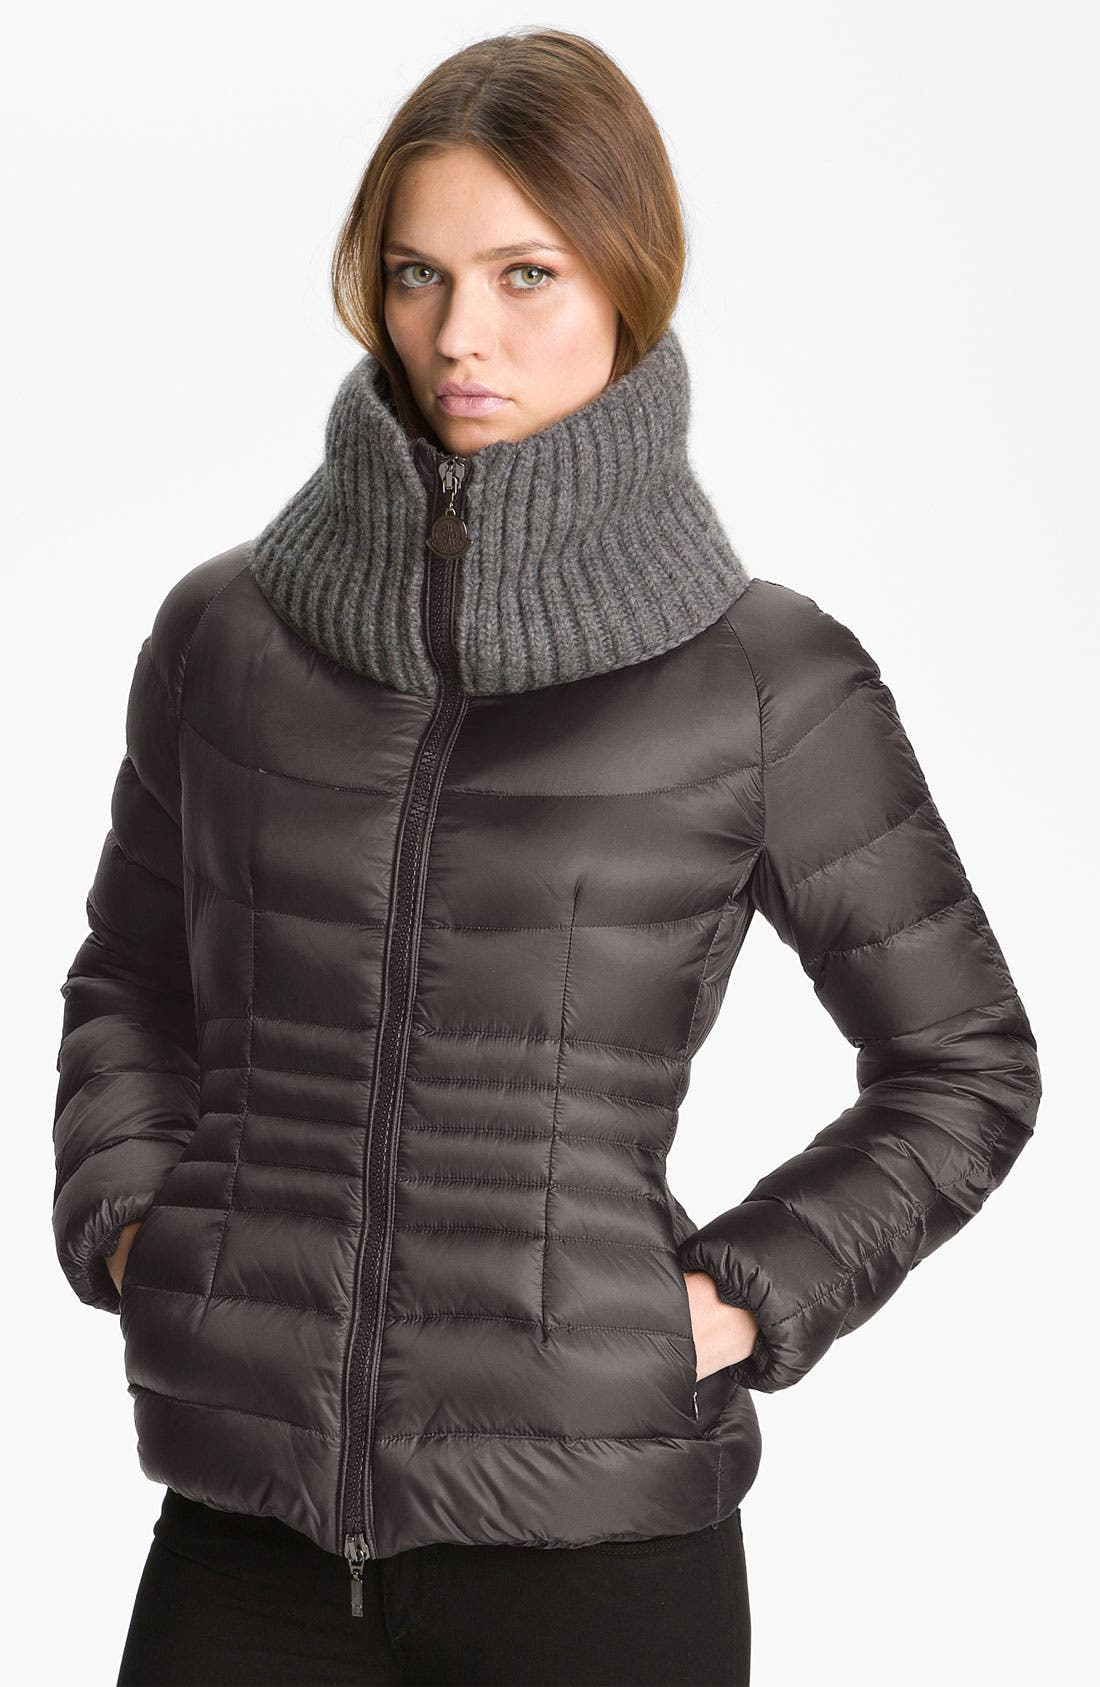 Alternate Image 1 Selected - Moncler 'Peliade' Knit Collar Down Jacket